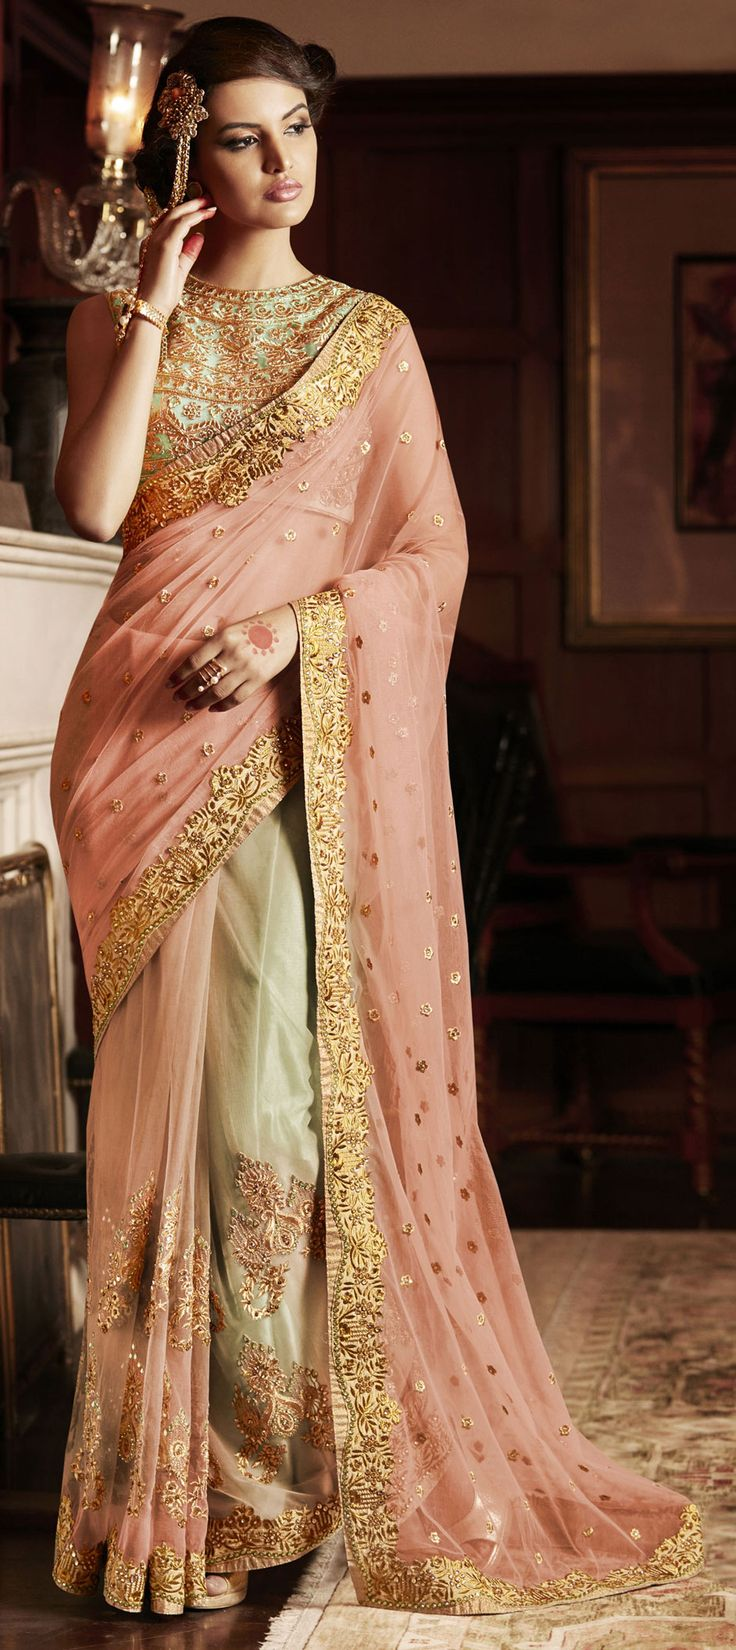 189205: Pink and Majenta color family Embroidered Sarees, Party Wear Sarees with matching unstitched blouse.